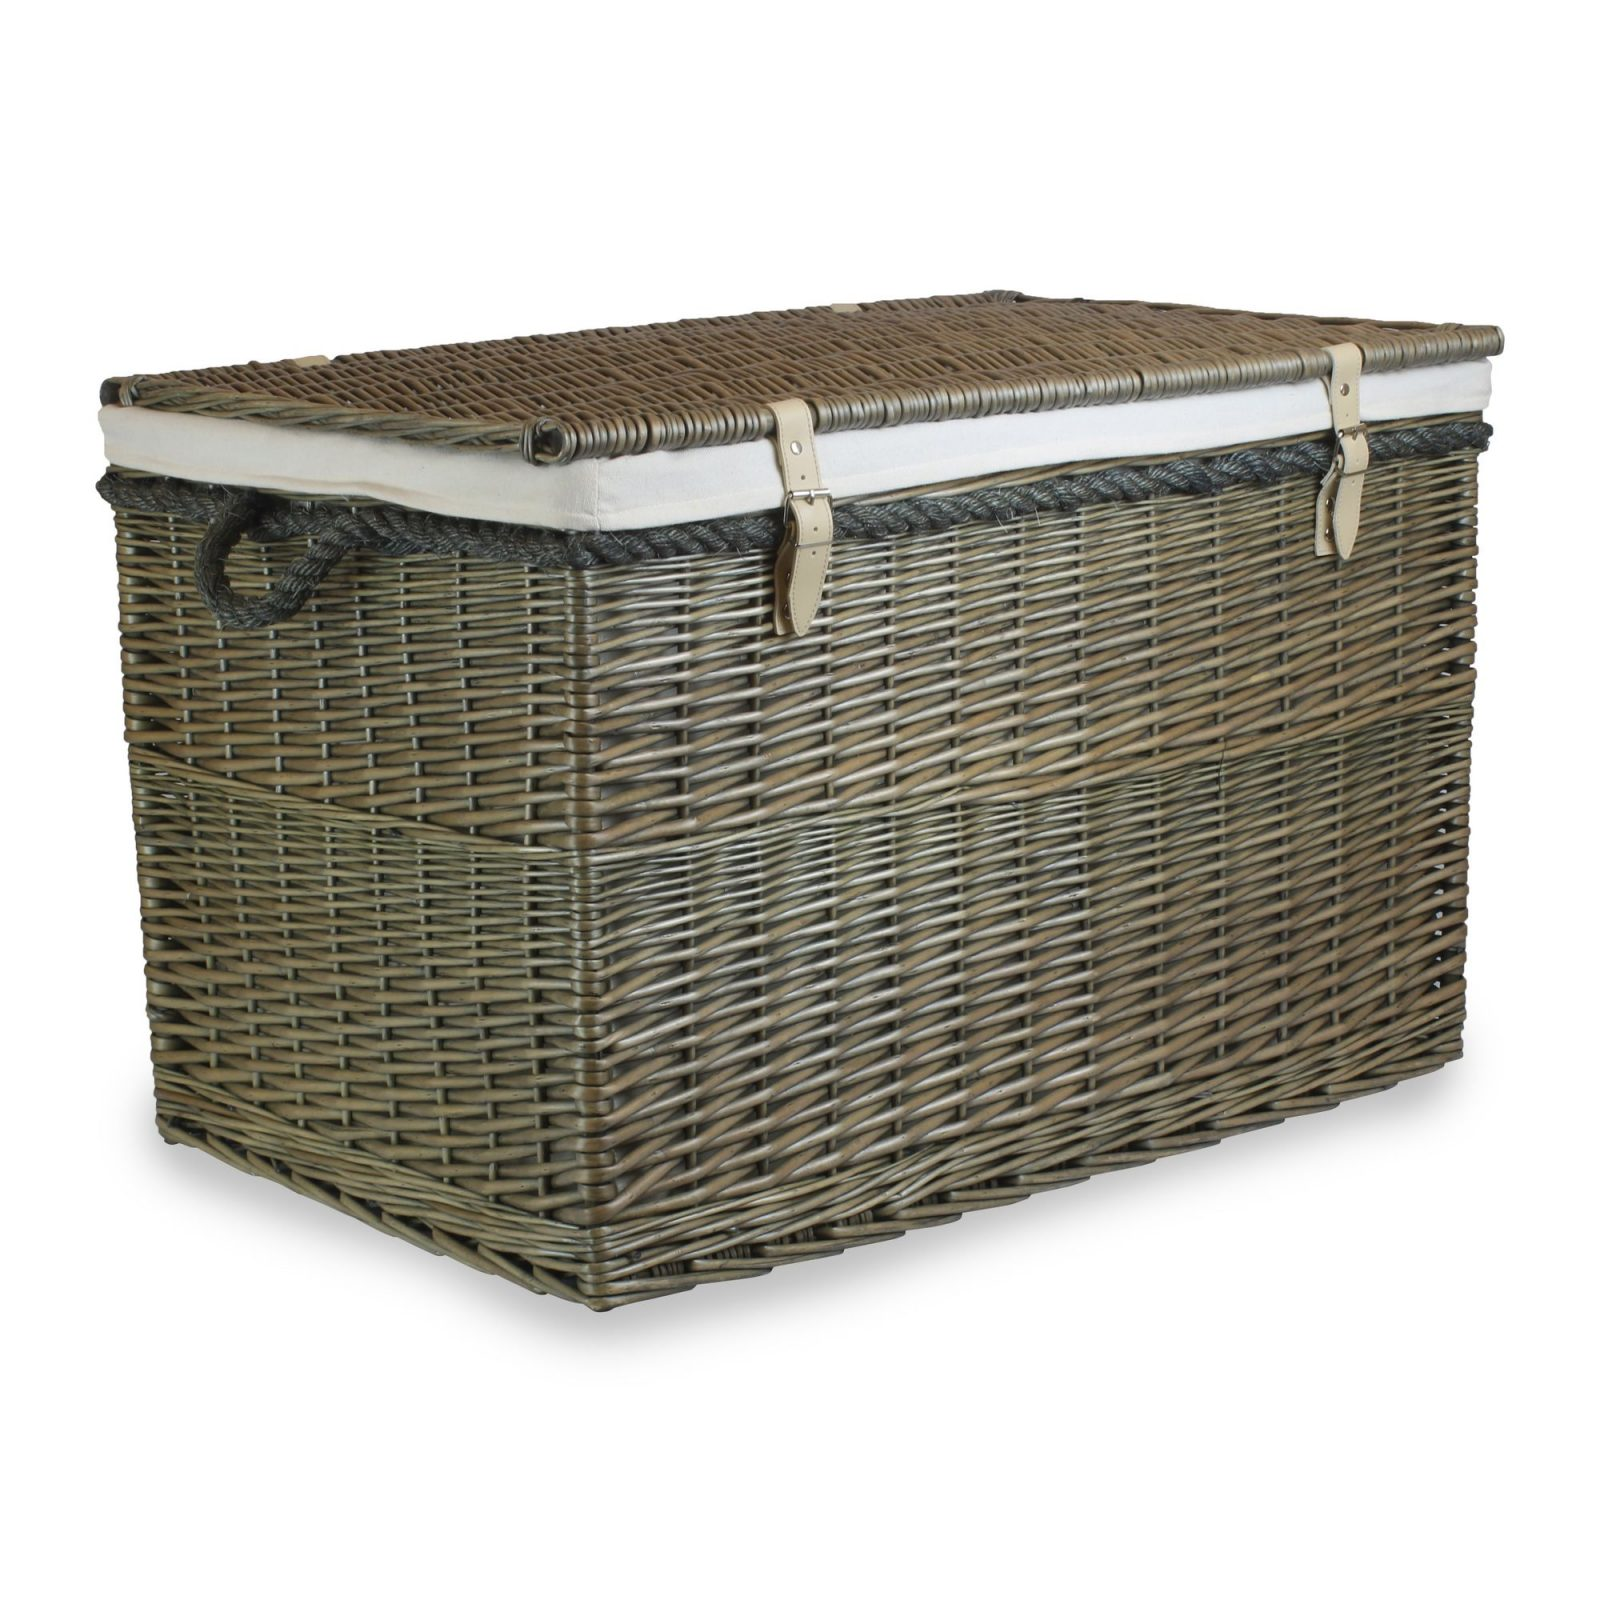 "EH094W Arbroath 29"" Large Wicker Storage Hamper 1 